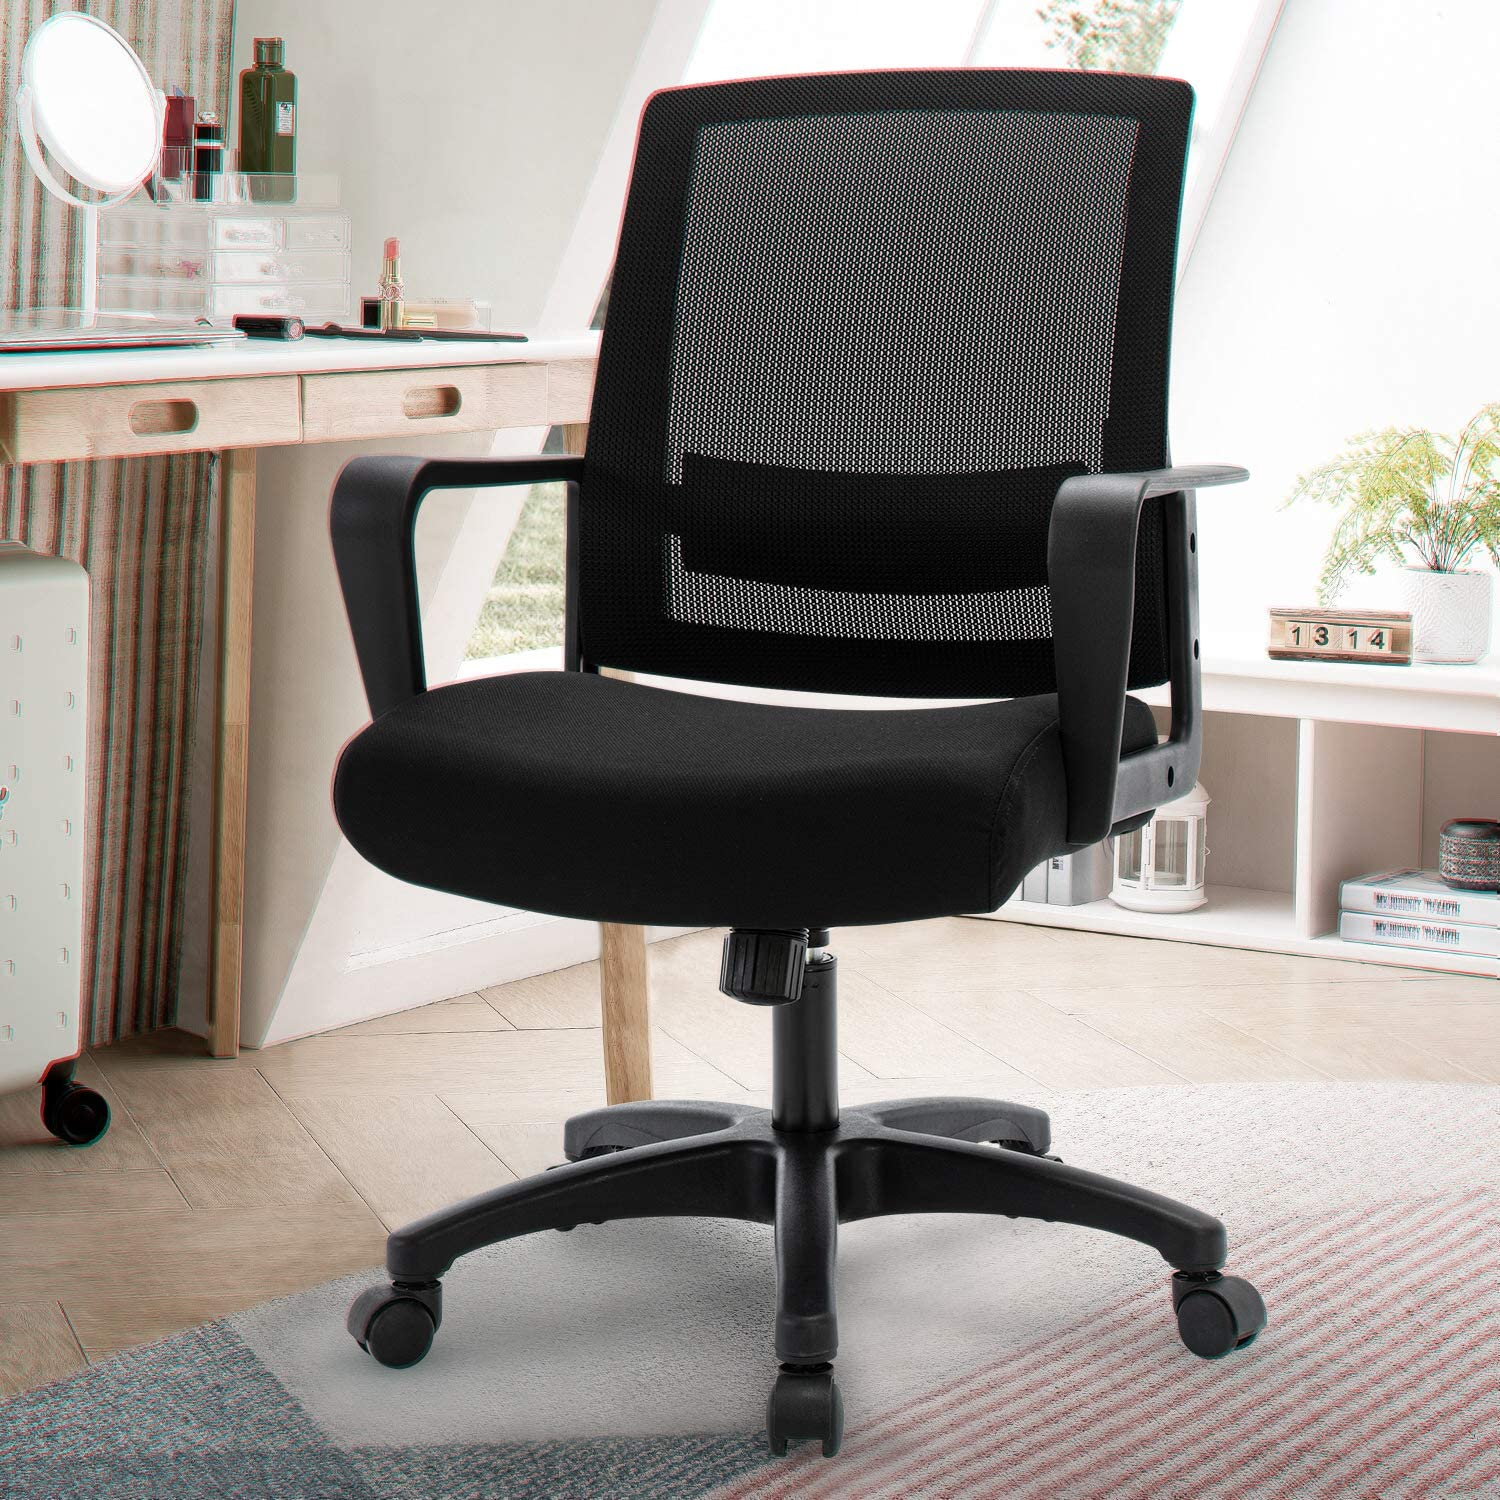 Mesh Home Office Chair Tampa Mall Ergonomic A Back Desk Mid San Diego Mall Computer